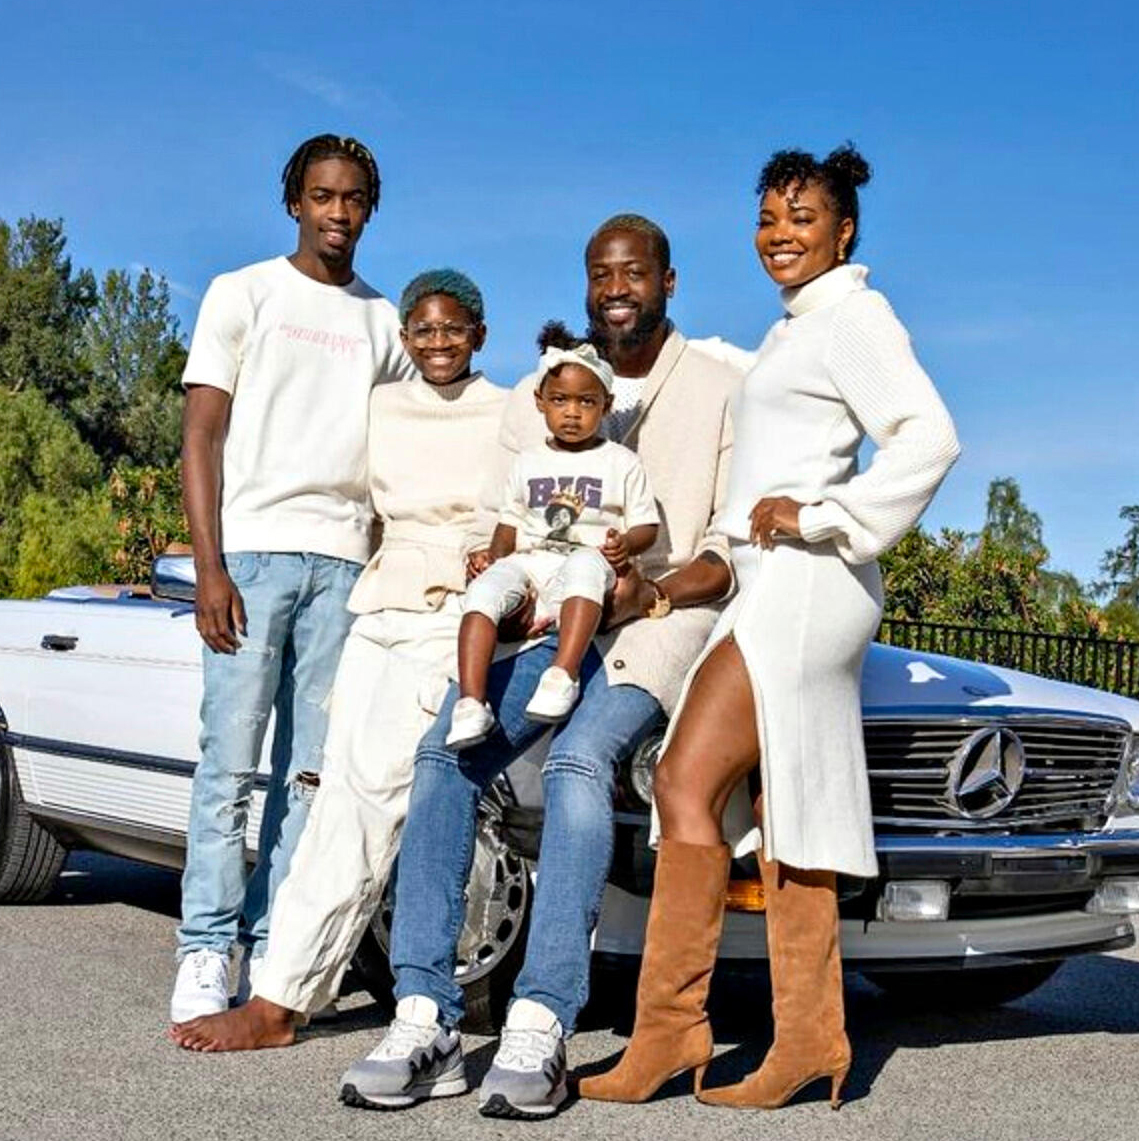 gabrielle union and dwyane wade with their family